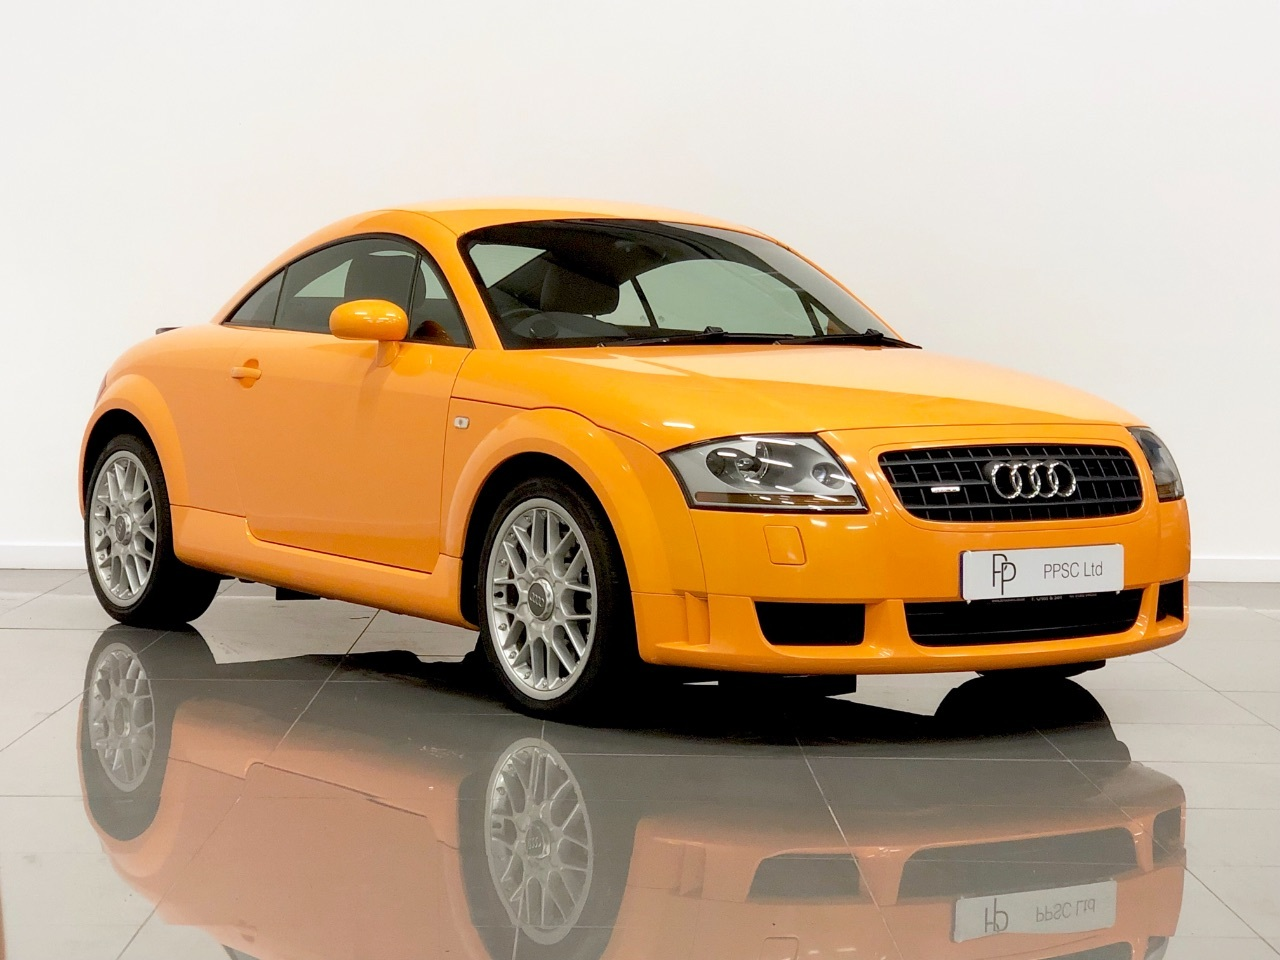 Audi TT 3.2 V6 Quattro 2dr DSG Coupe Petrol Orange